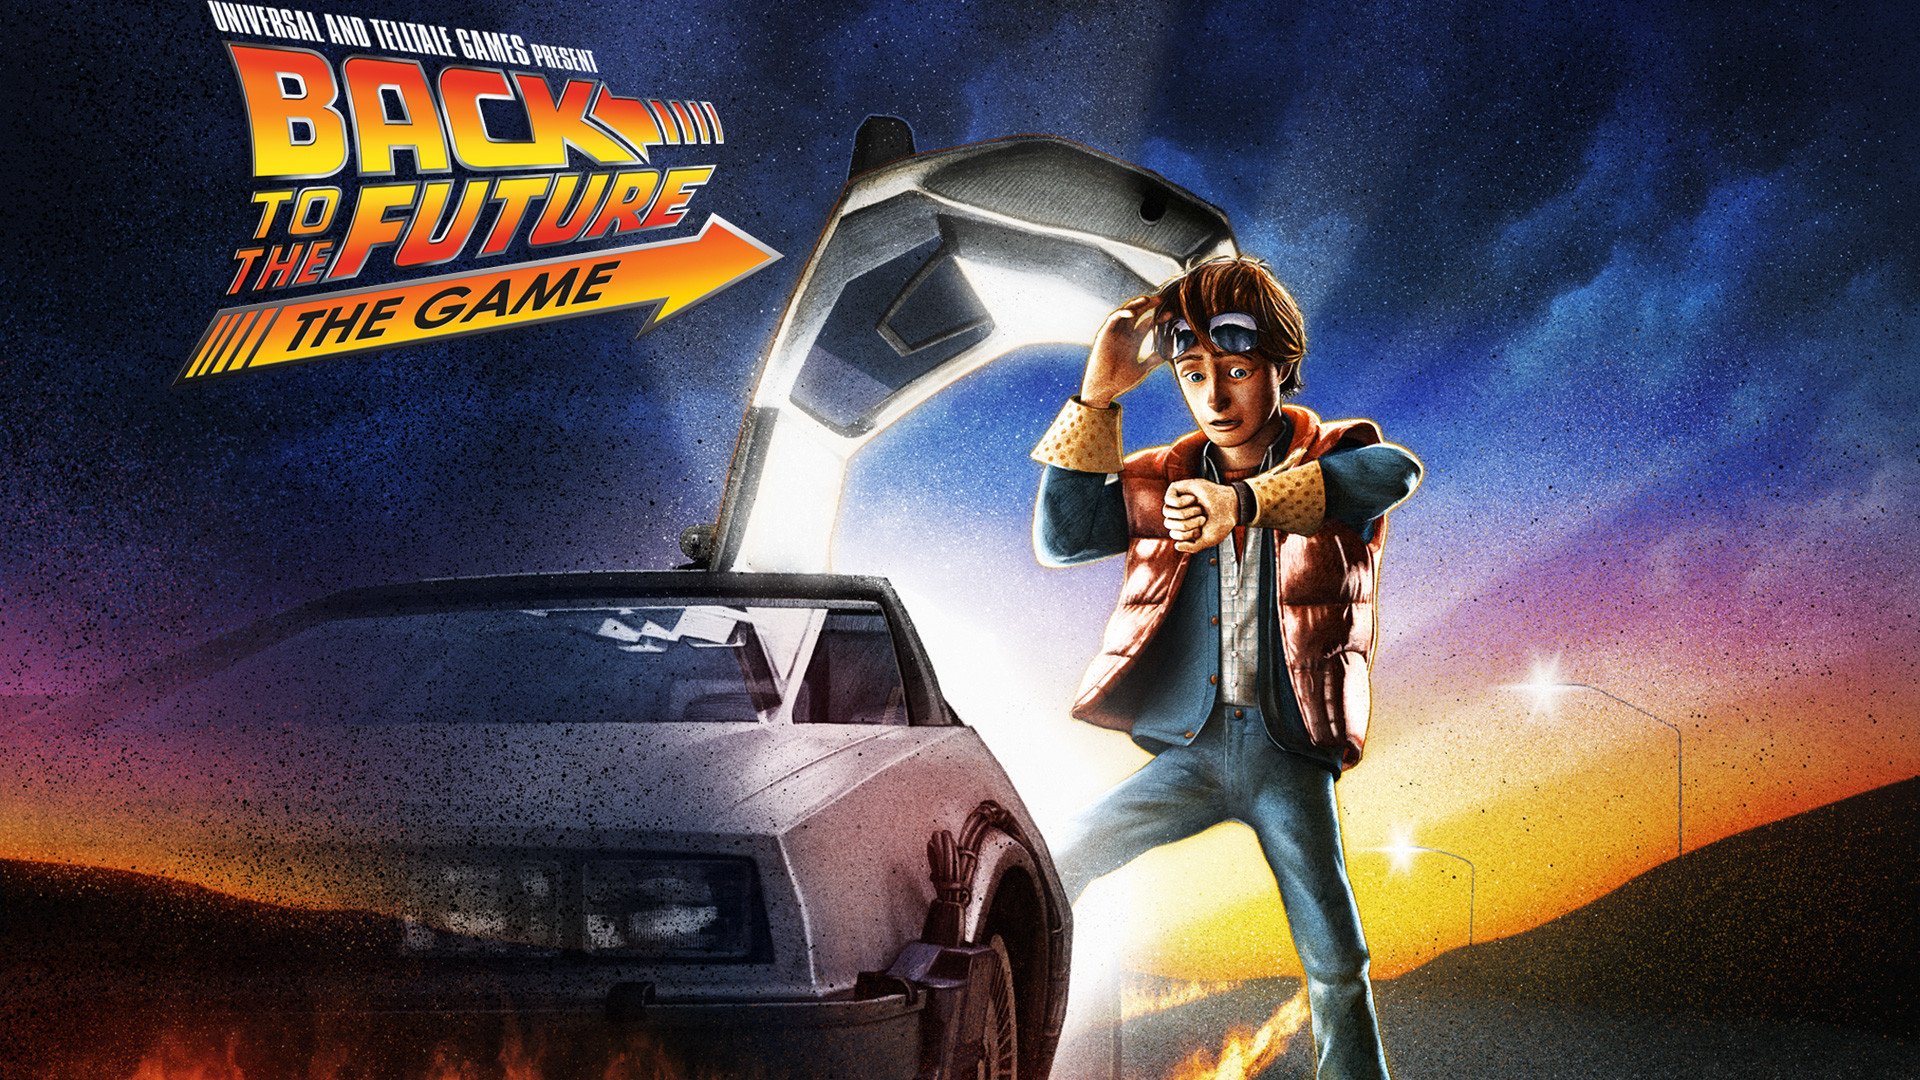 1920x1080 2 Back to the Future: The Game HD Wallpapers | Backgrounds - Wallpaper Abyss